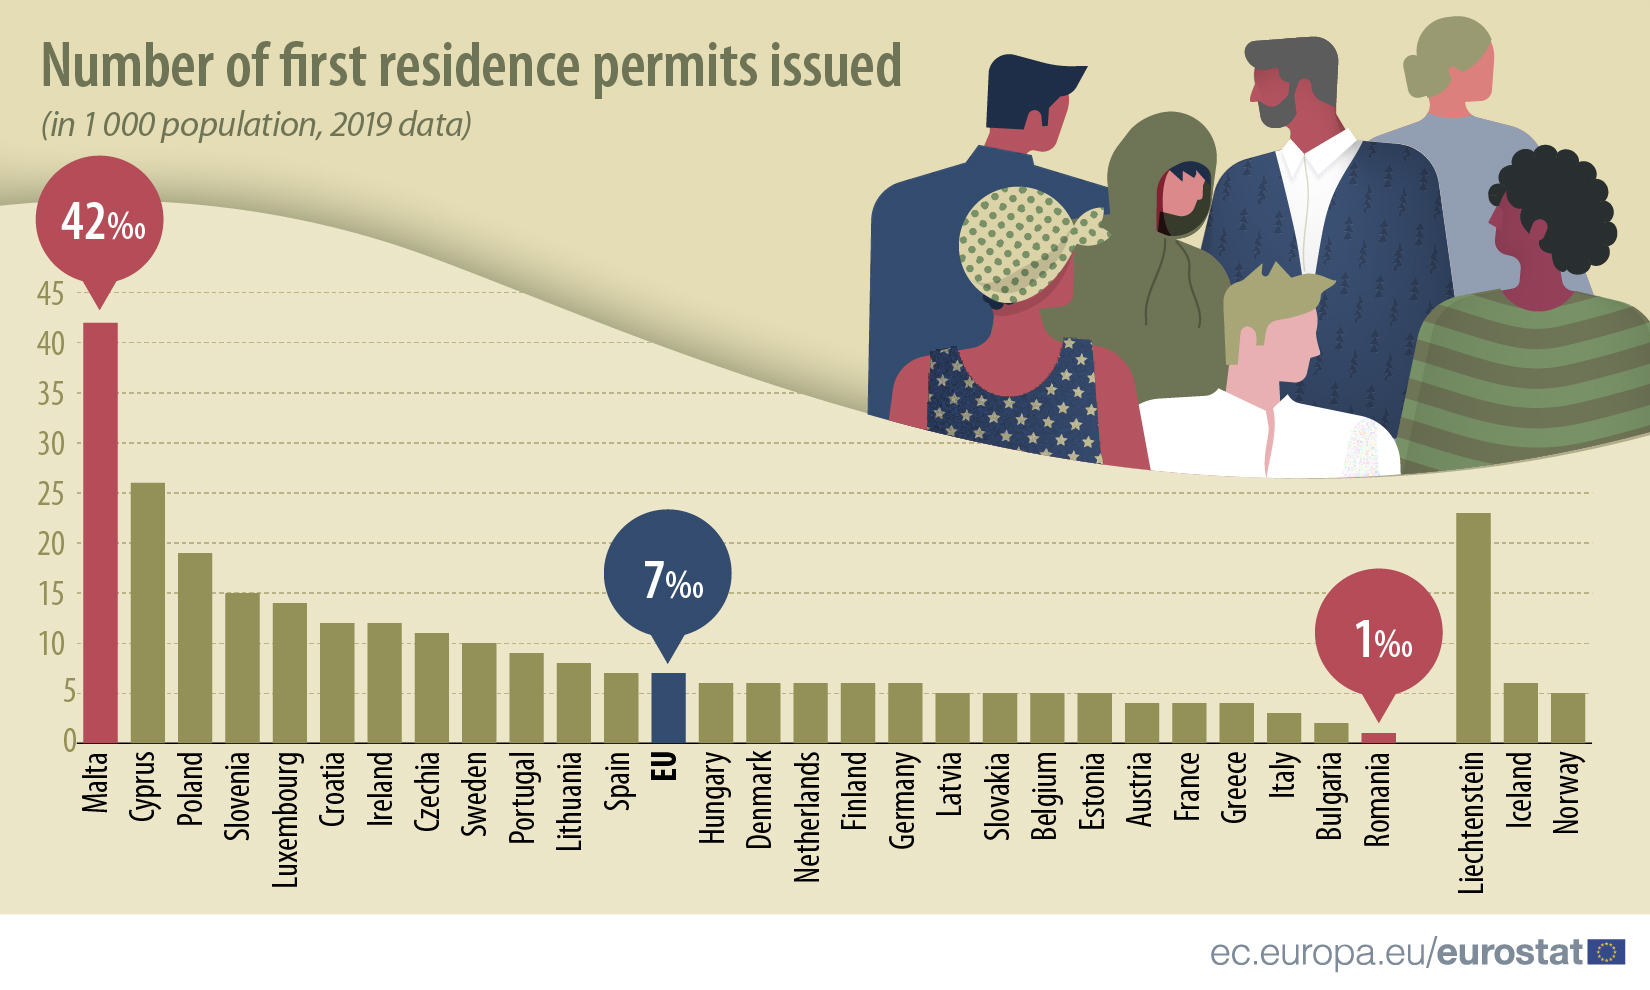 Number of first residence permits issued (in 1 000 population, 2019 data)